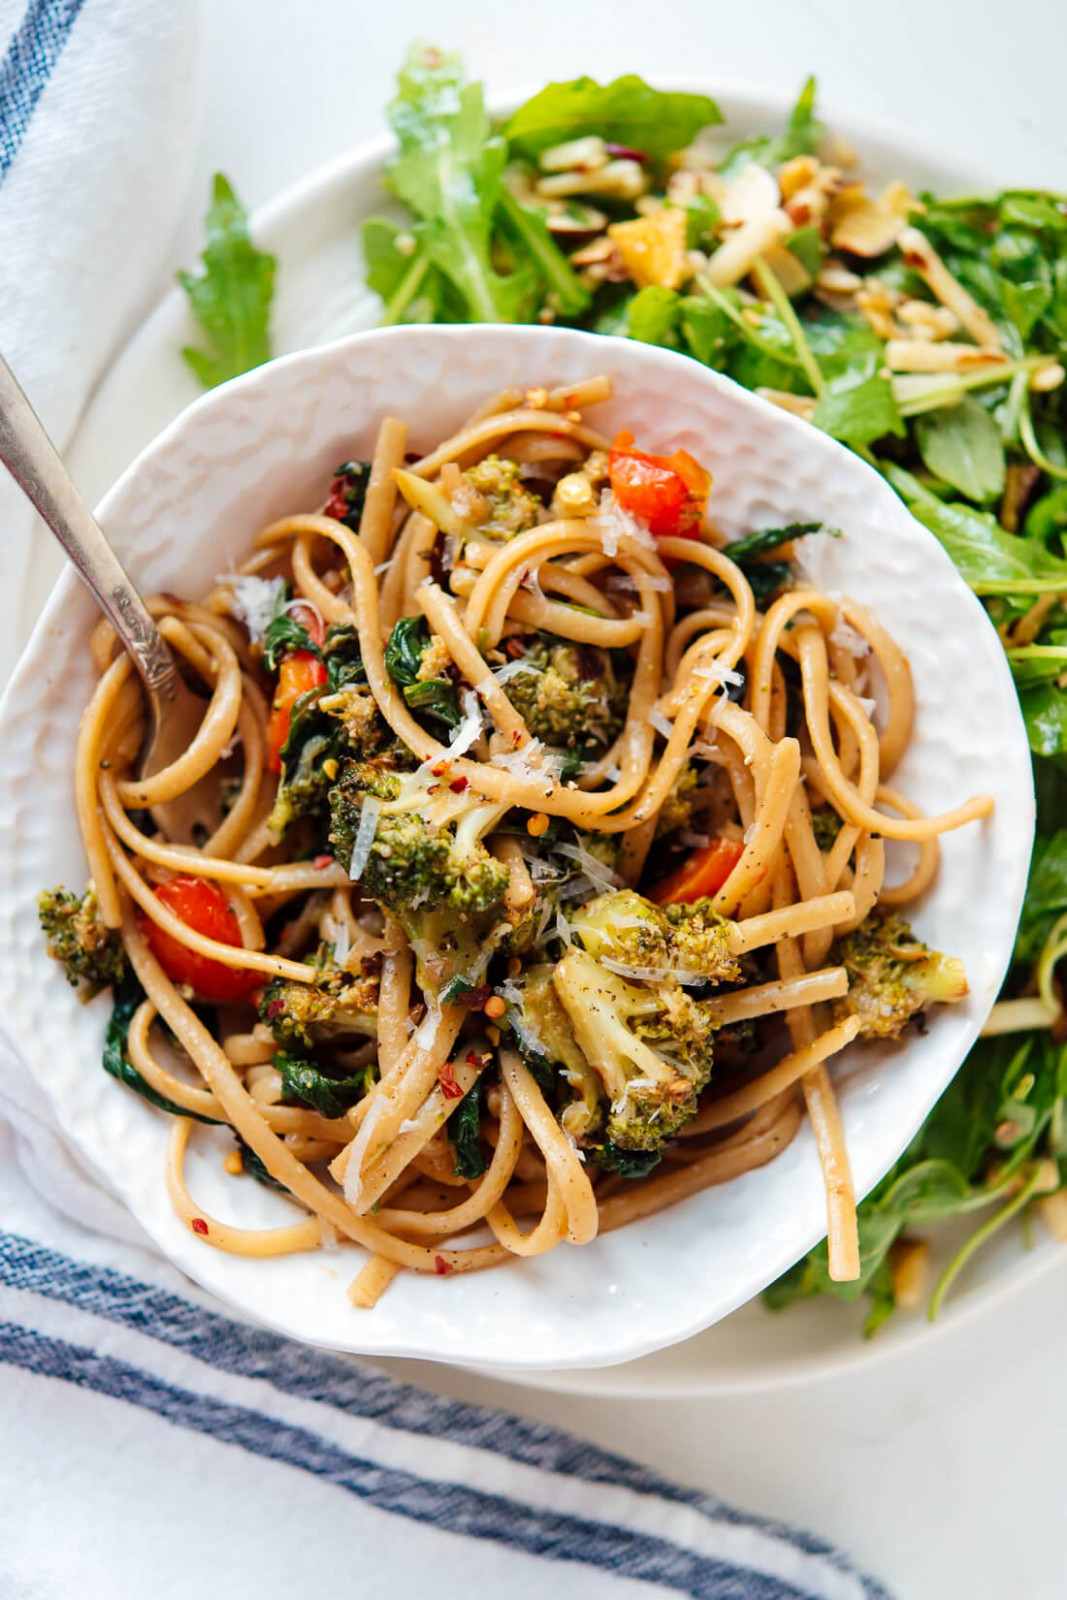 Spinach Pasta with Roasted Vegetables - Cookie and Kate